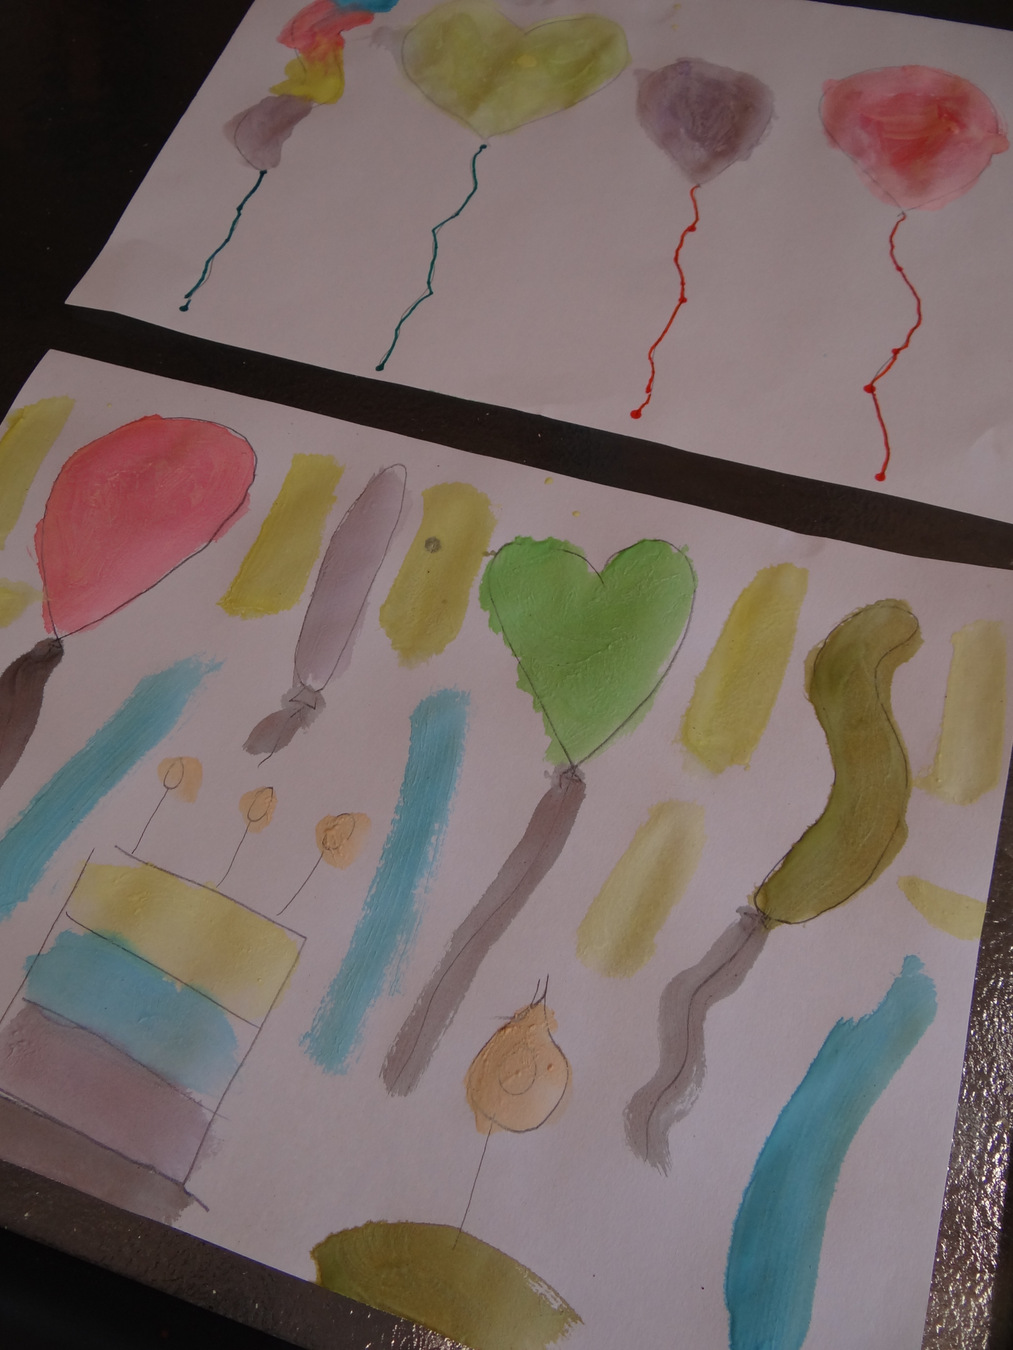 How to make your own watercolour painting